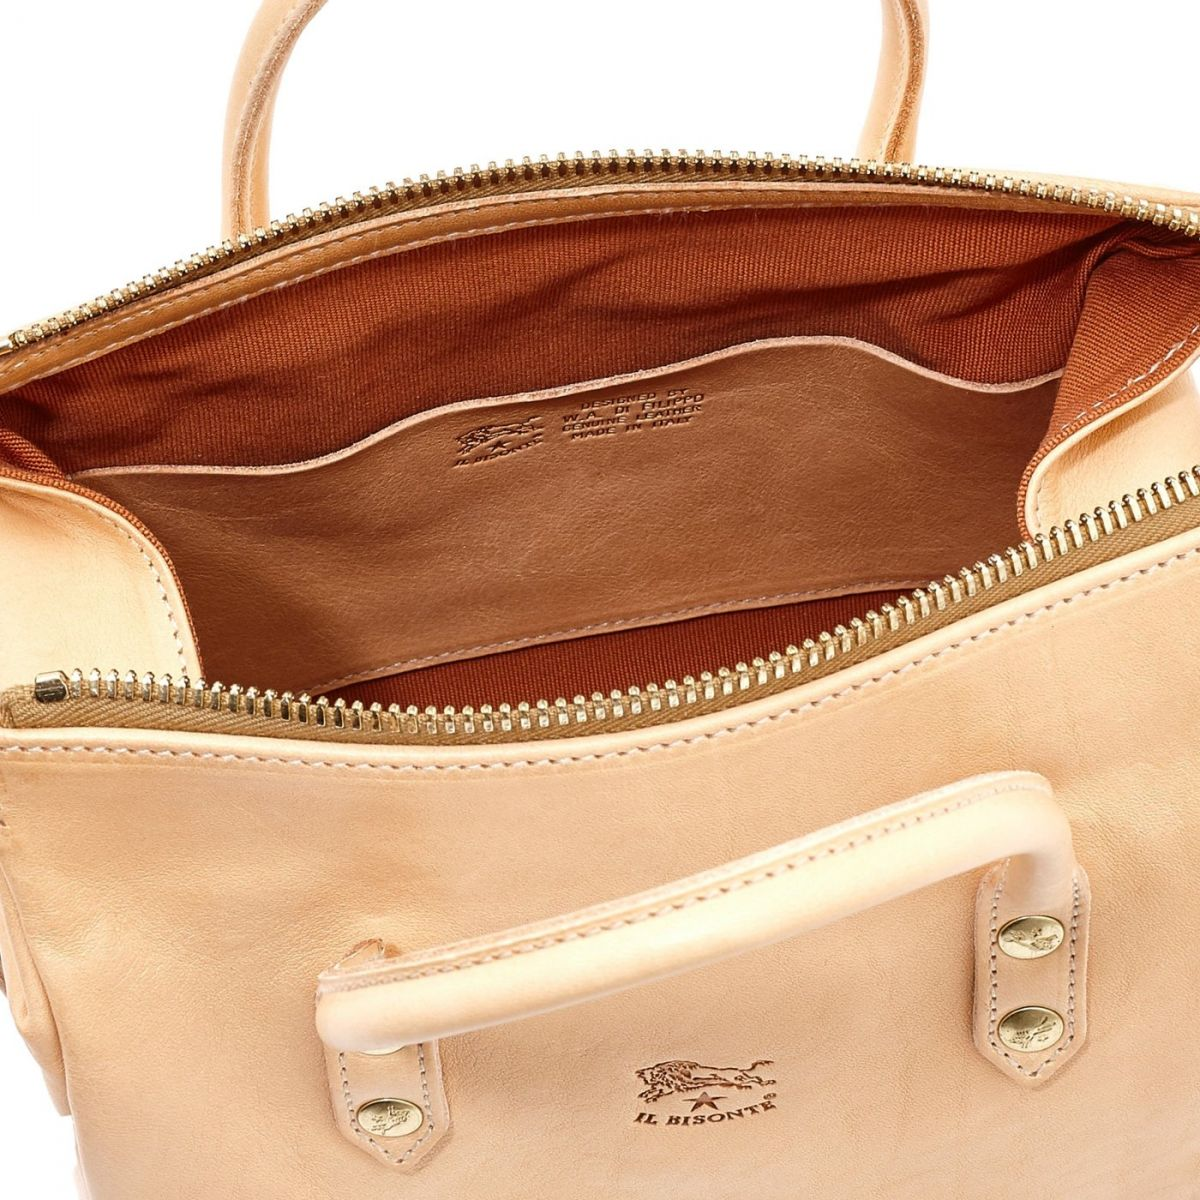 Women's Handbag Pratolino in Cowhide Double Leather BTH049 color Natural | Details